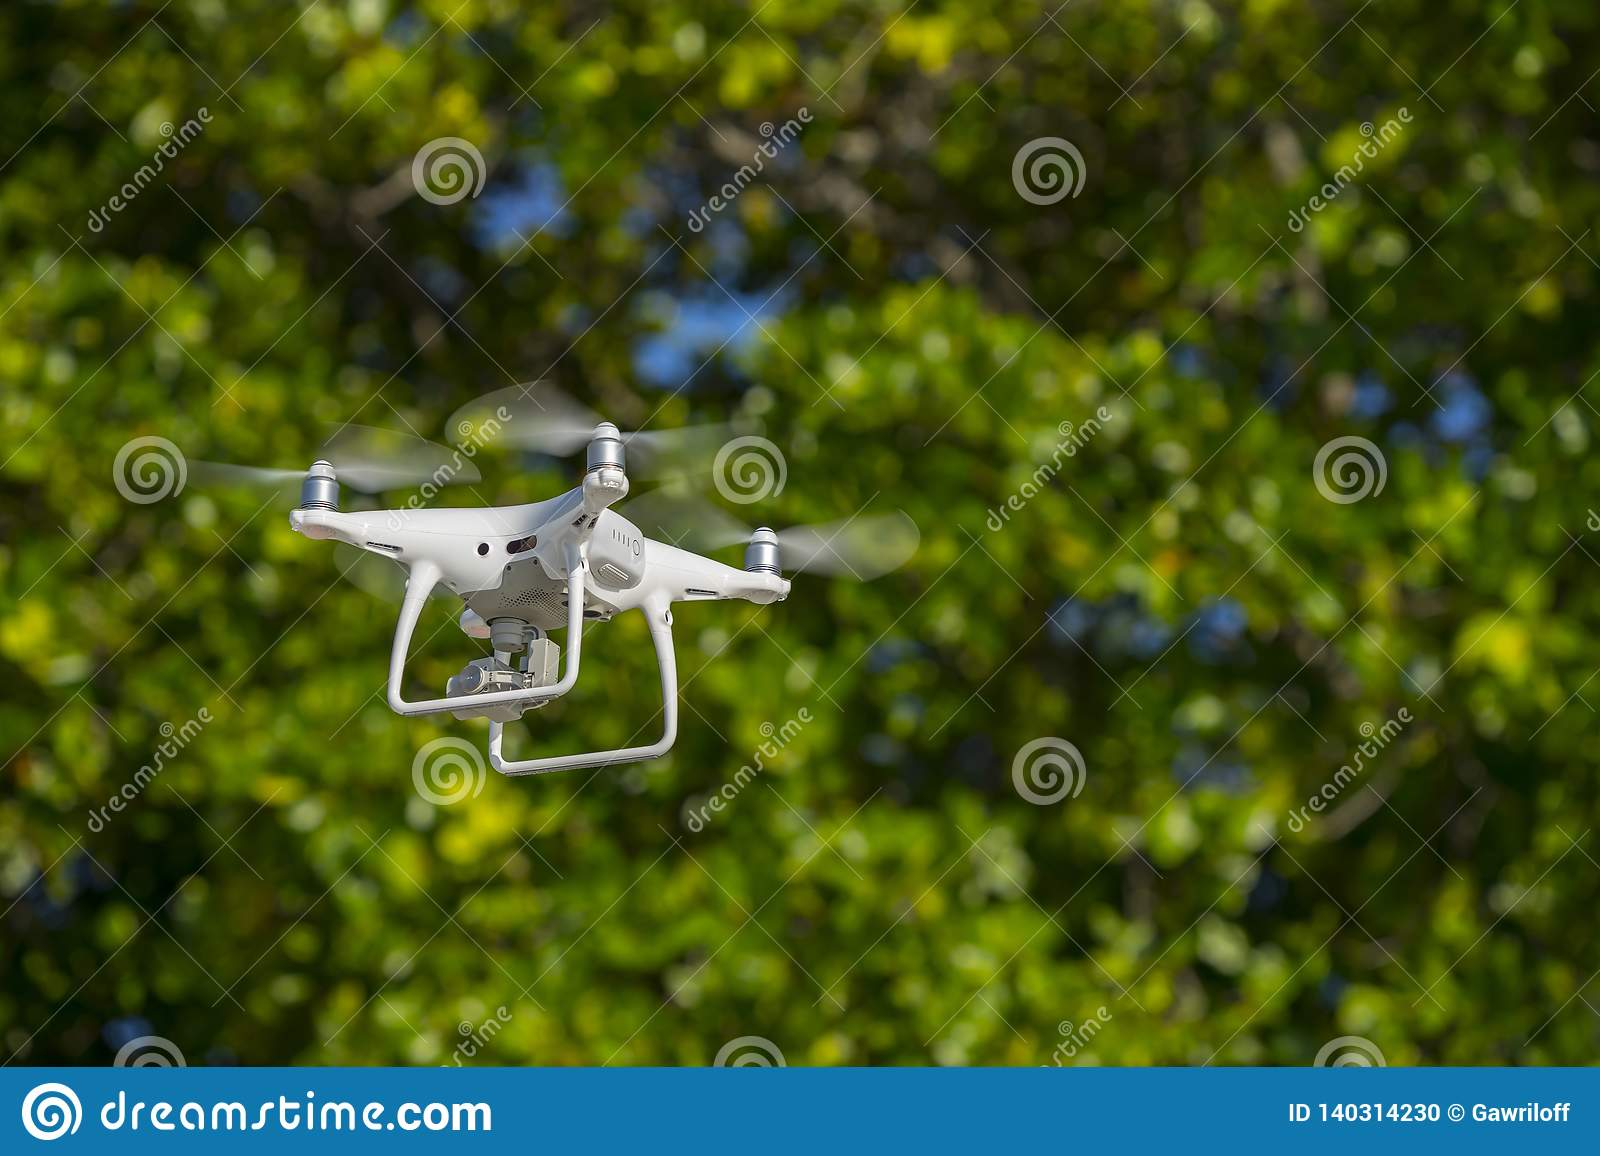 Drone in flight, green trees in the background, selective focus on the drone